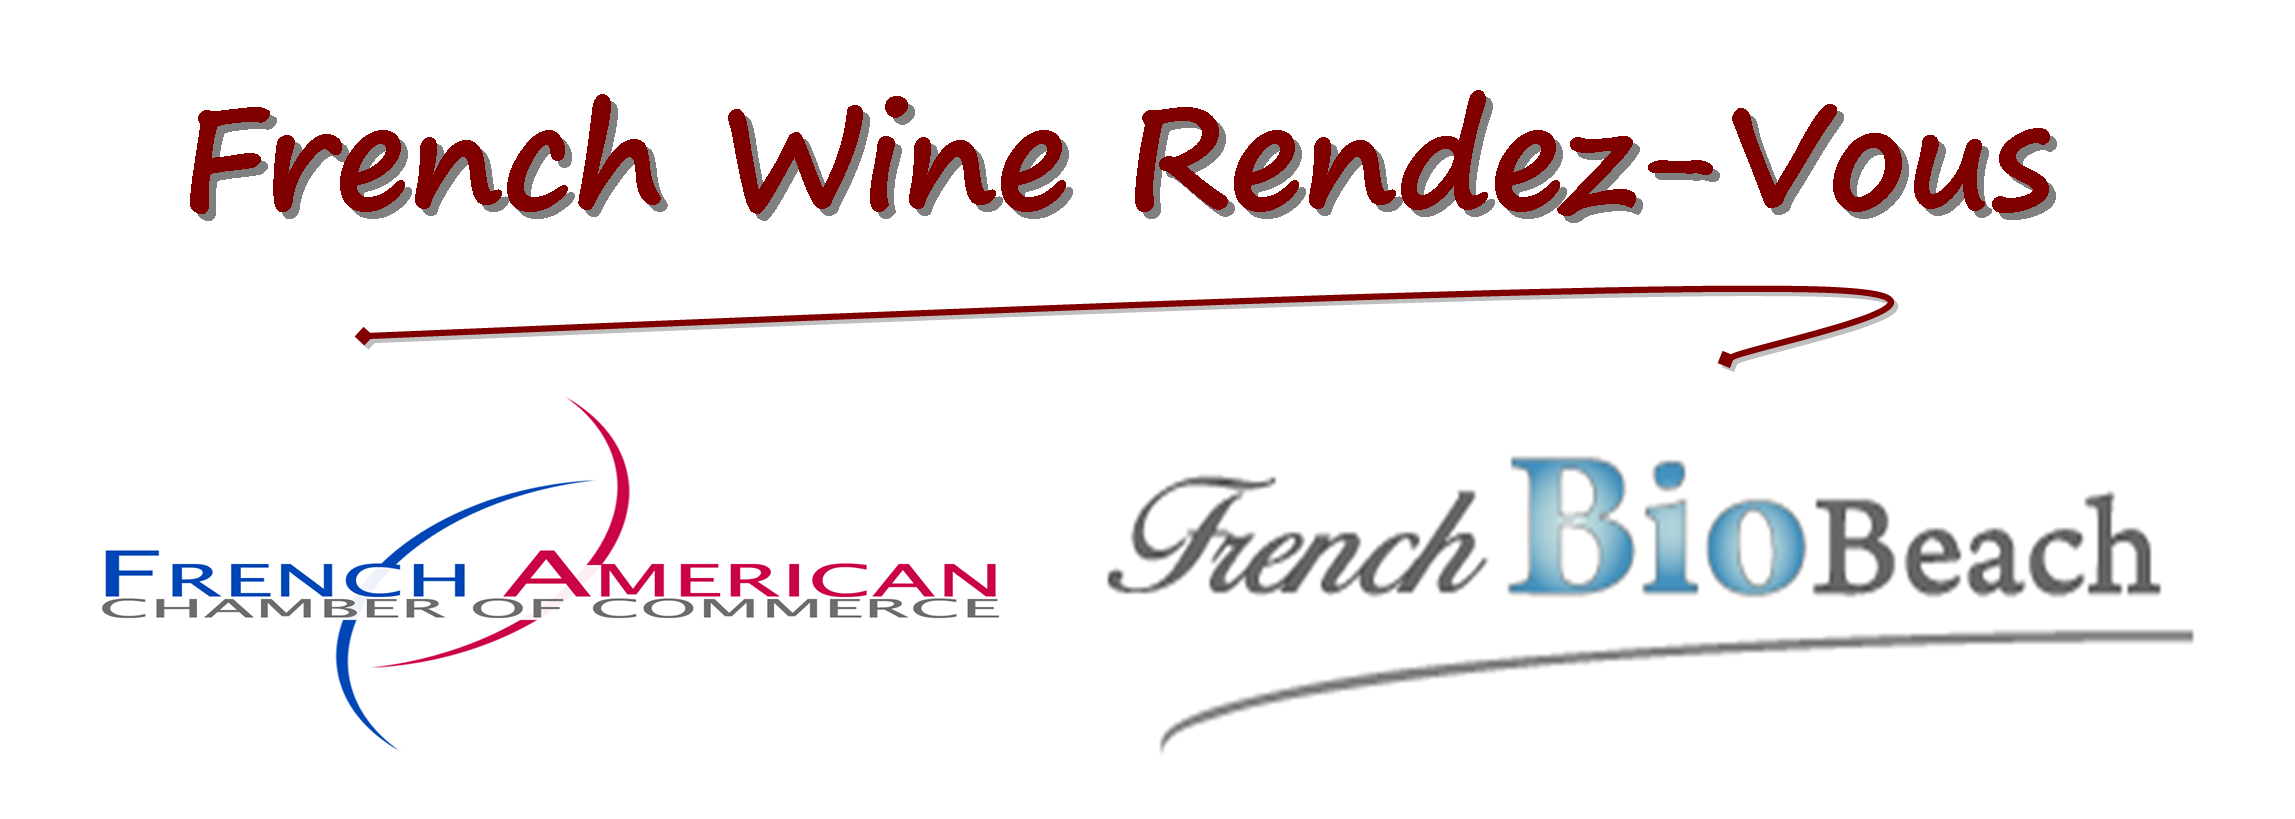 French Wine Rendez-Vous